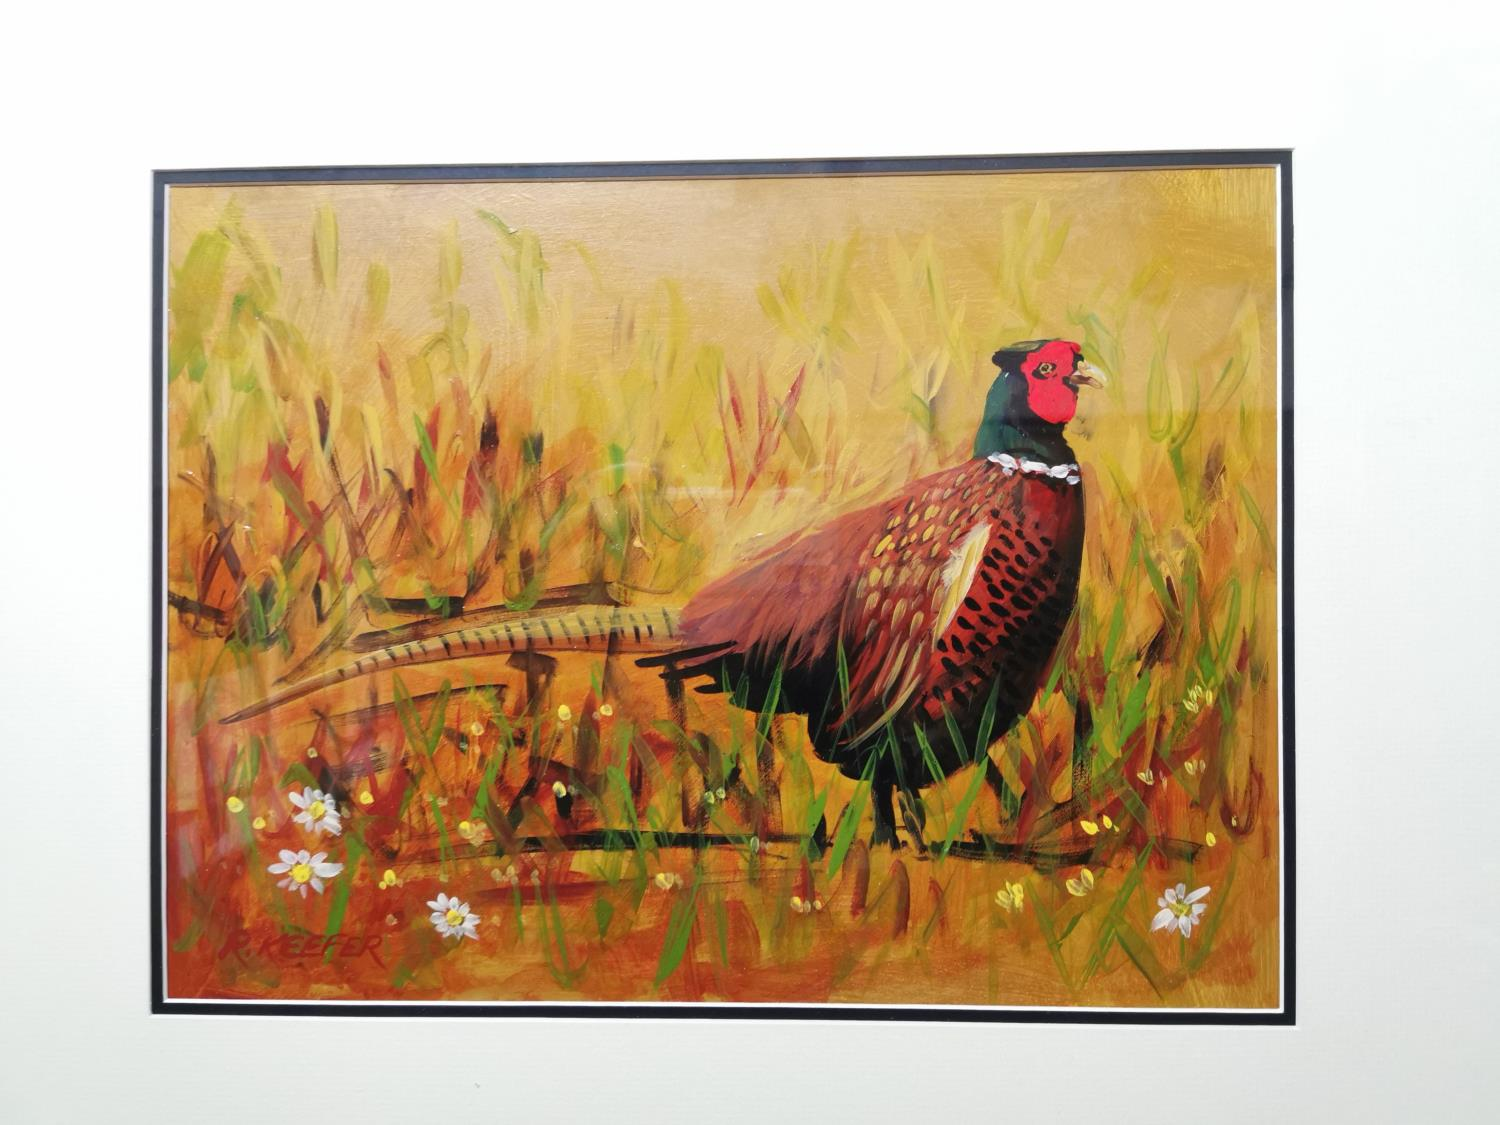 R Keefer The Cock Pheasant Watercolour - Image 2 of 2